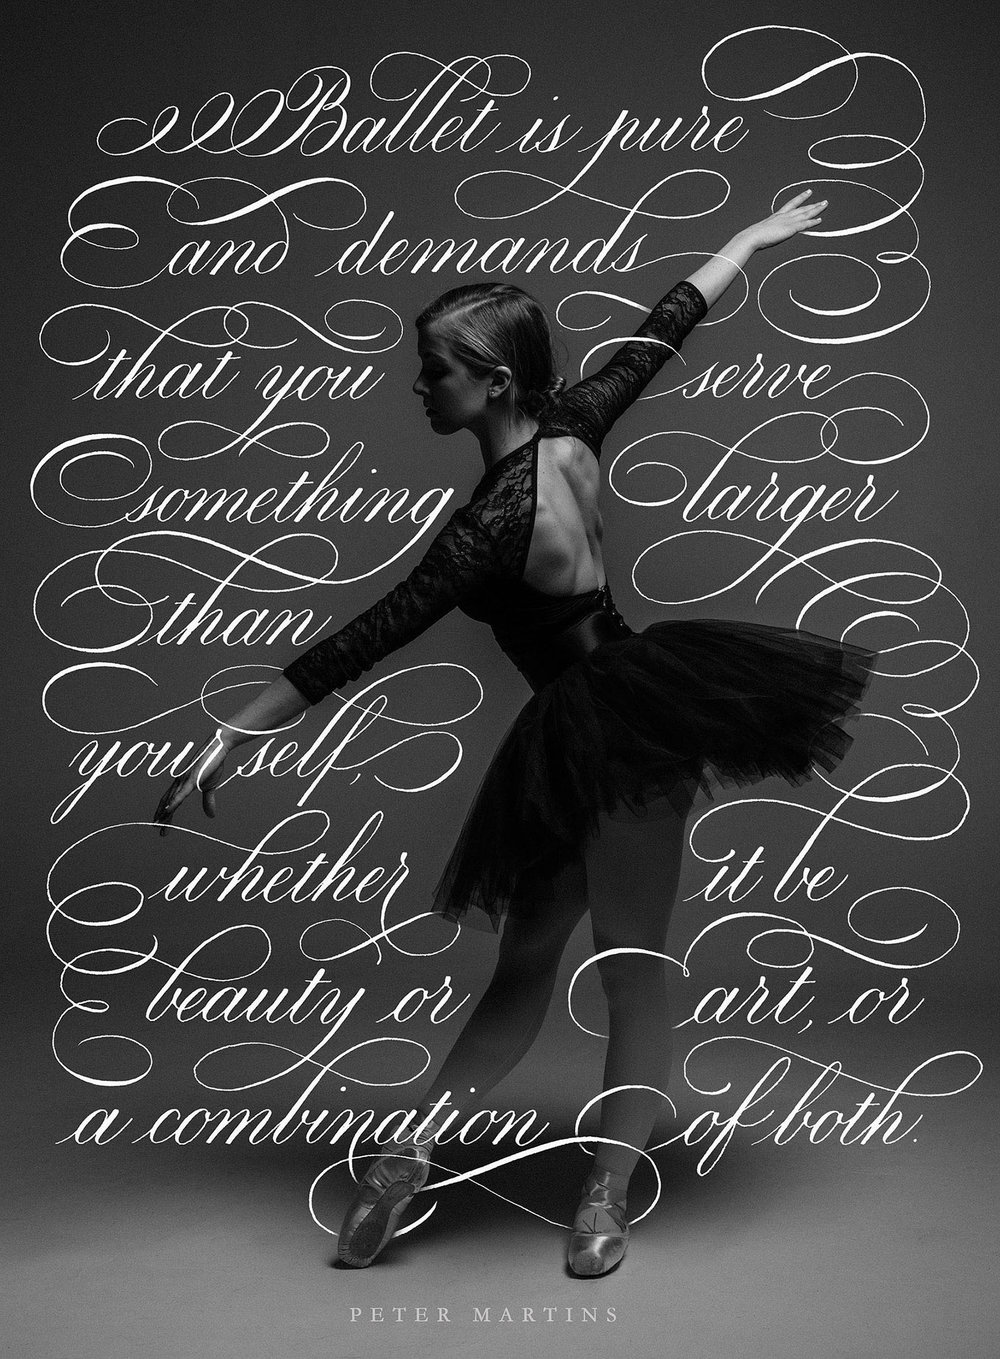 """Ballet is pure and demands that you serve something larger than yourself, whether it be beauty or art, or a combination of both. It requires discipline, taking care of yourself, taking care of your own body first. Then it allows you to give of that beauty, the beauty that you acquire by sculpting your own body all your life."" Peter Martins  Calligraphy by Type and Graphics Lab  typeandgraphicslab.com  